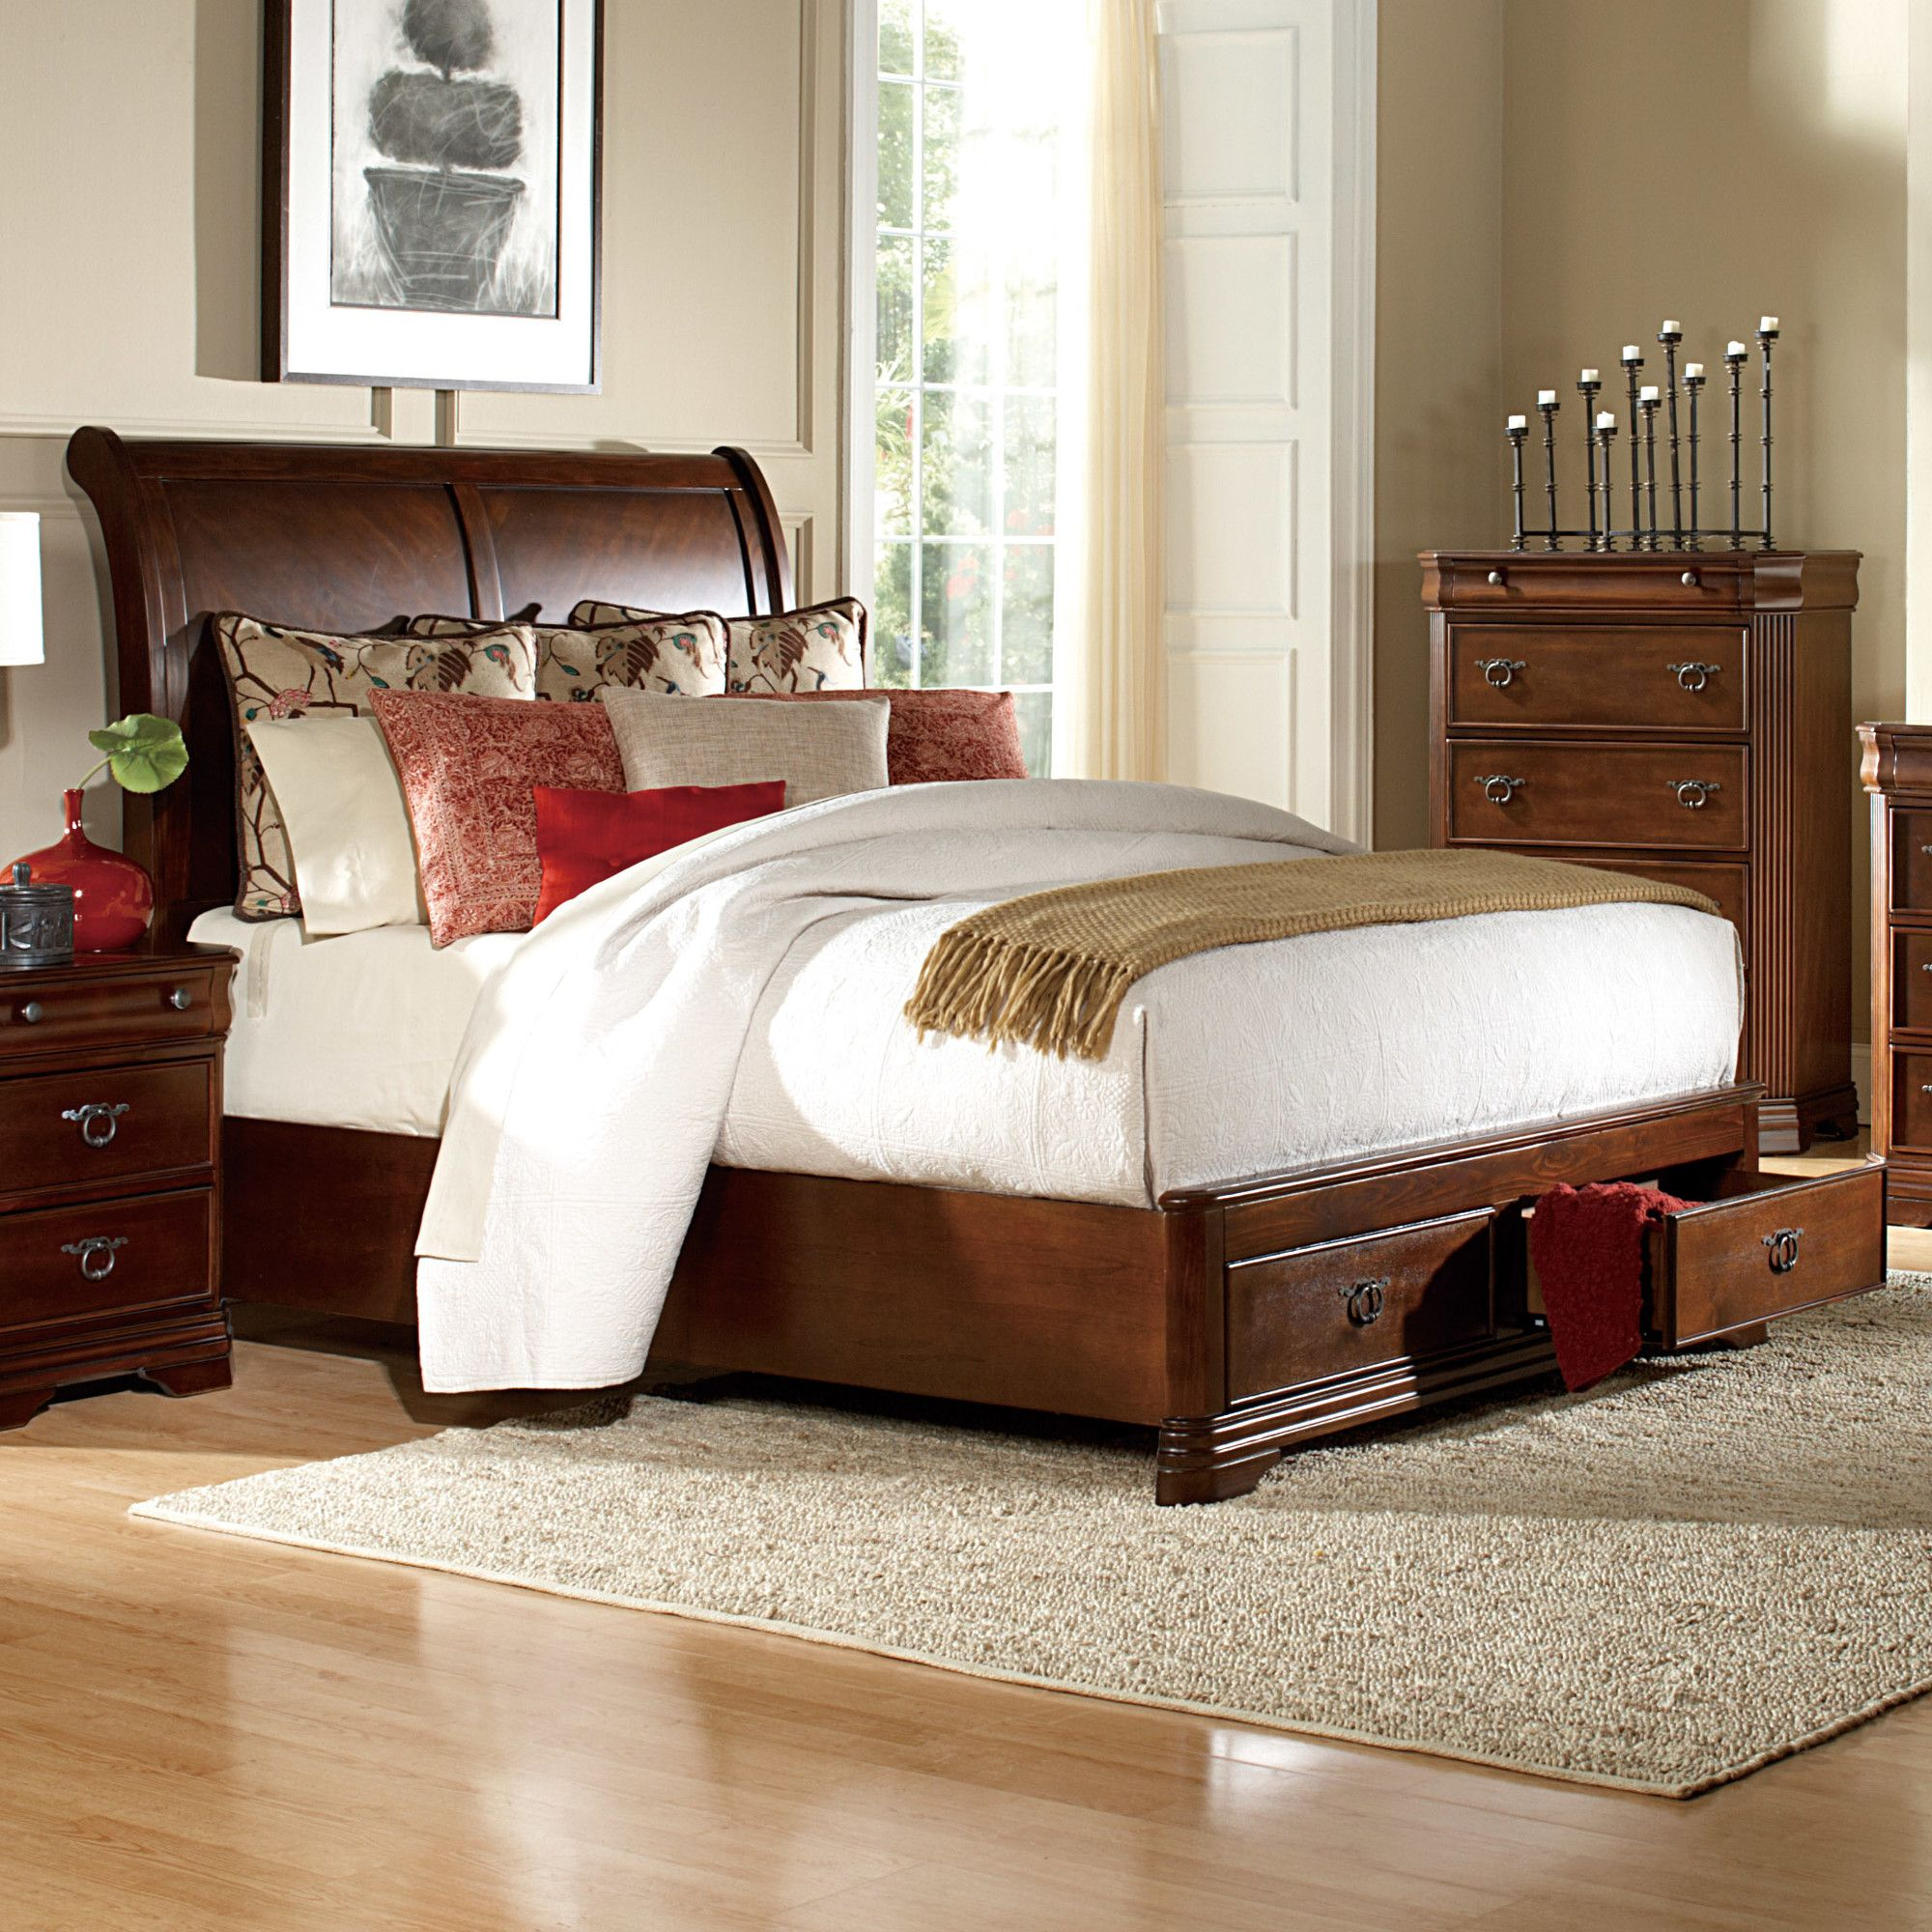 Judy platform bed products pinterest platform beds and products